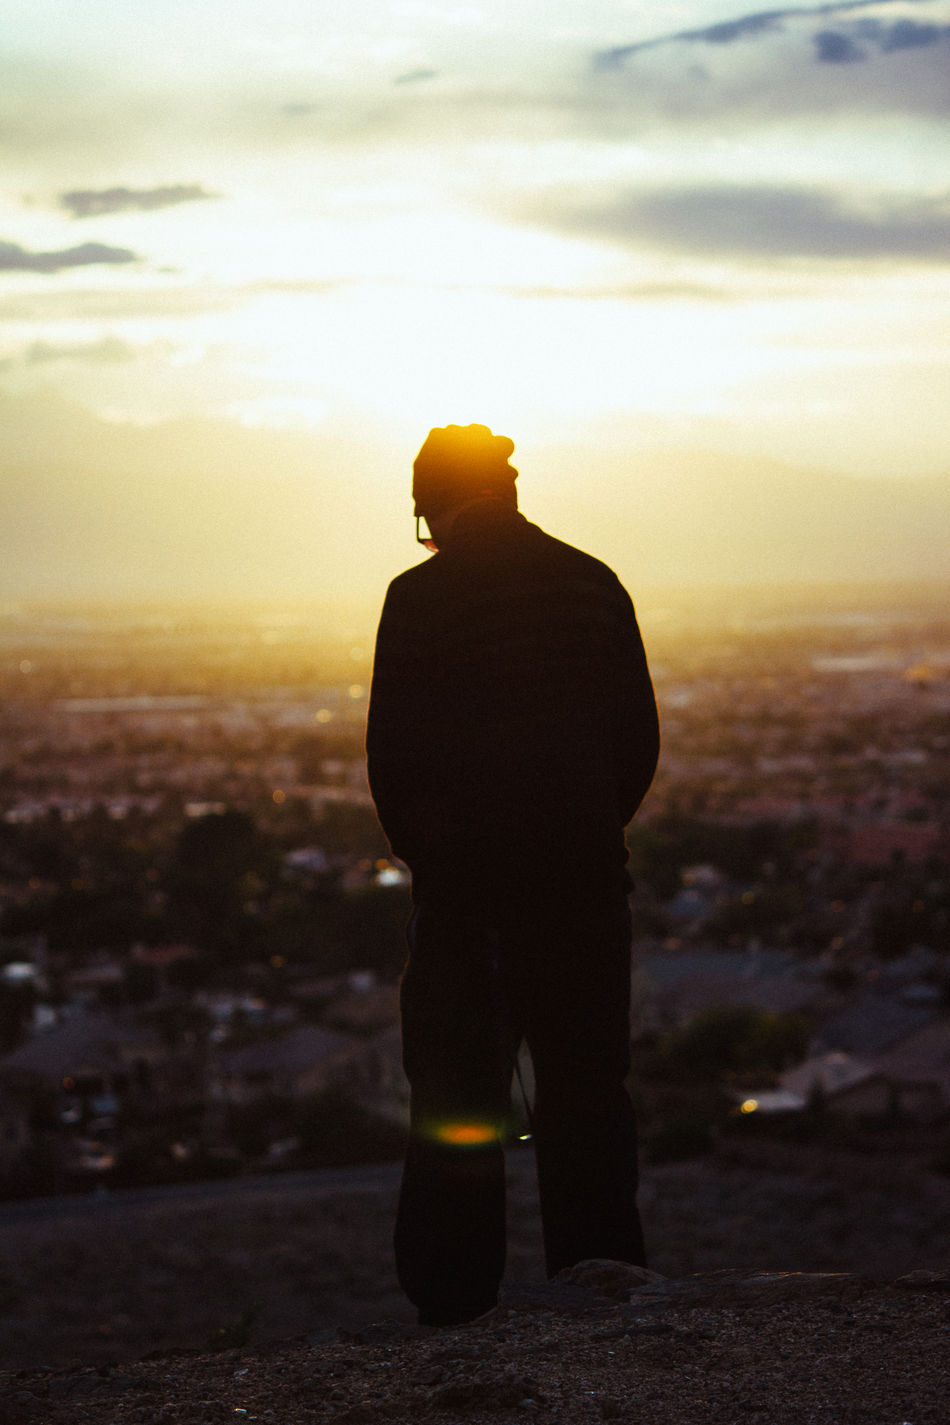 Adult Cloud - Sky Day Full Length Nature One Man Only One Person Only Men Outdoors People Person Rear View Silhouette Sky Standing Sunset Vertical